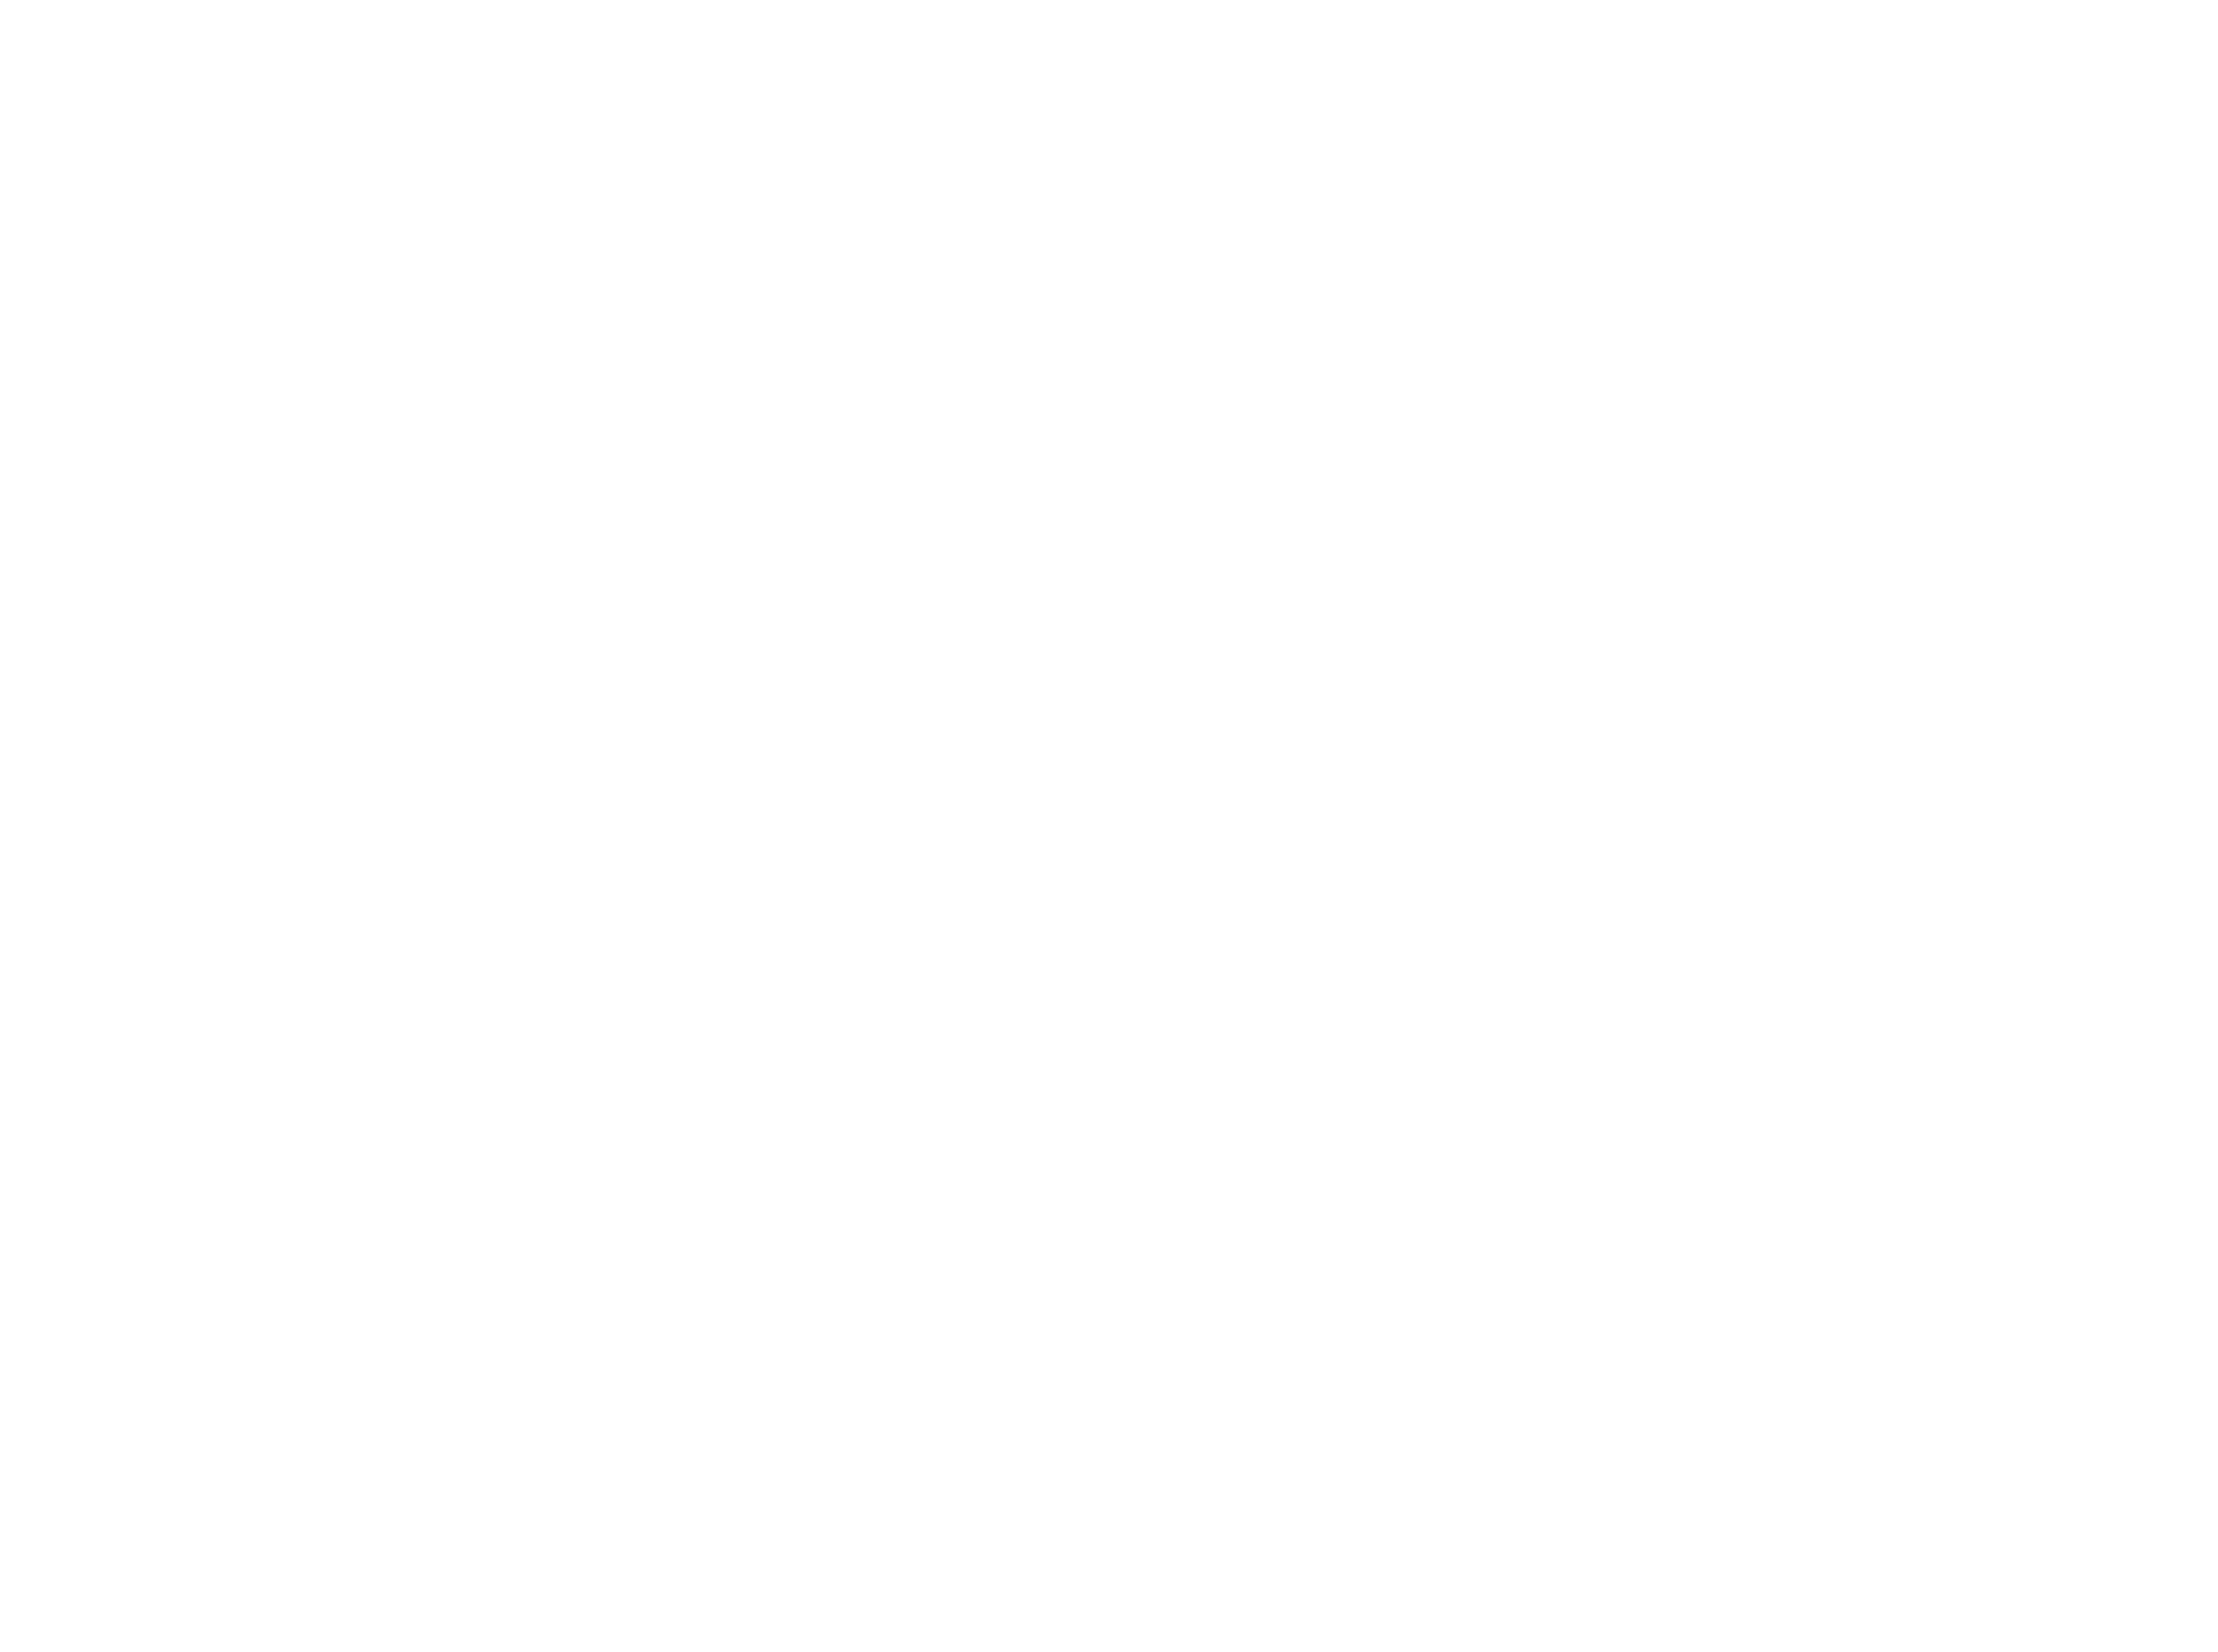 fani-stipkovic